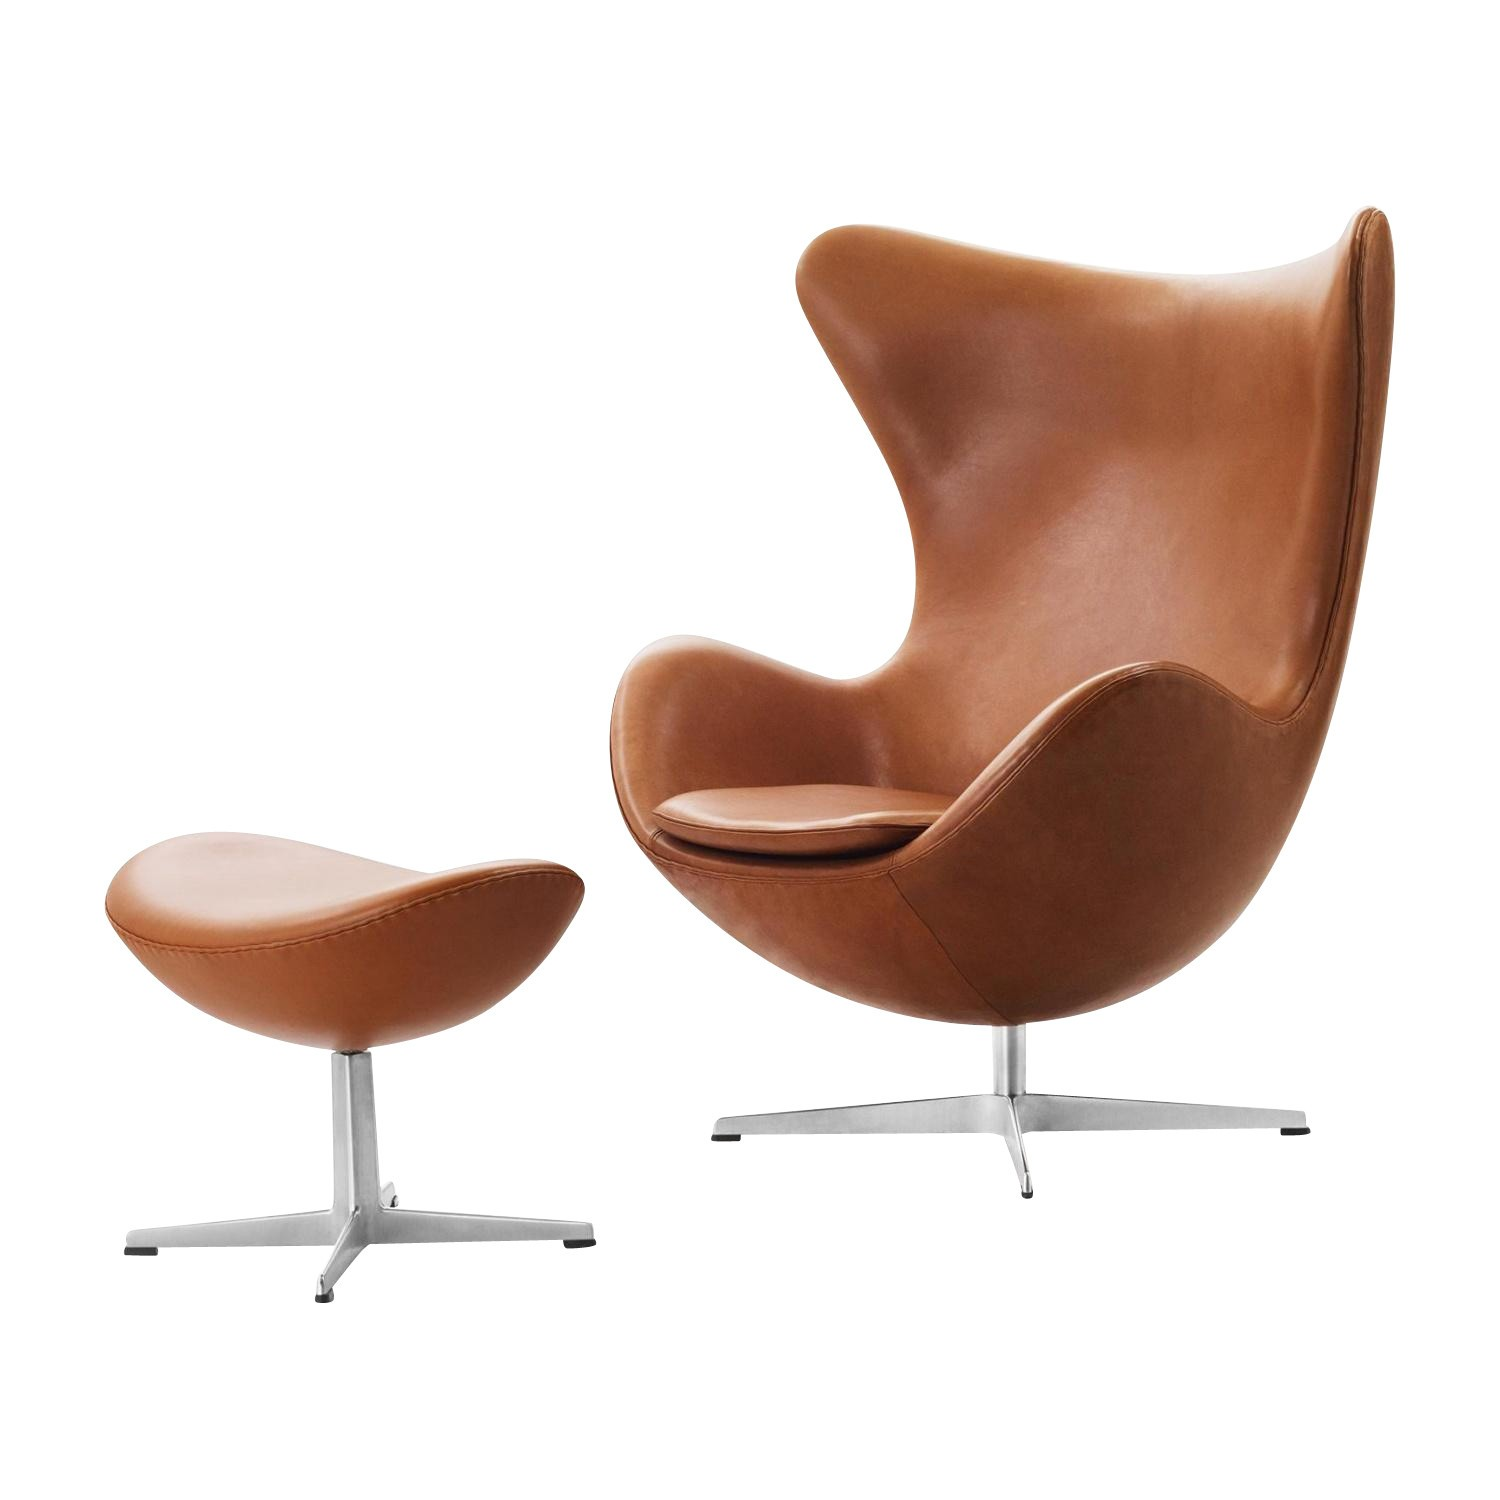 Sessel Mit Fusshocker Aktion Egg Chair Das Ei Sessel Hocker Leder